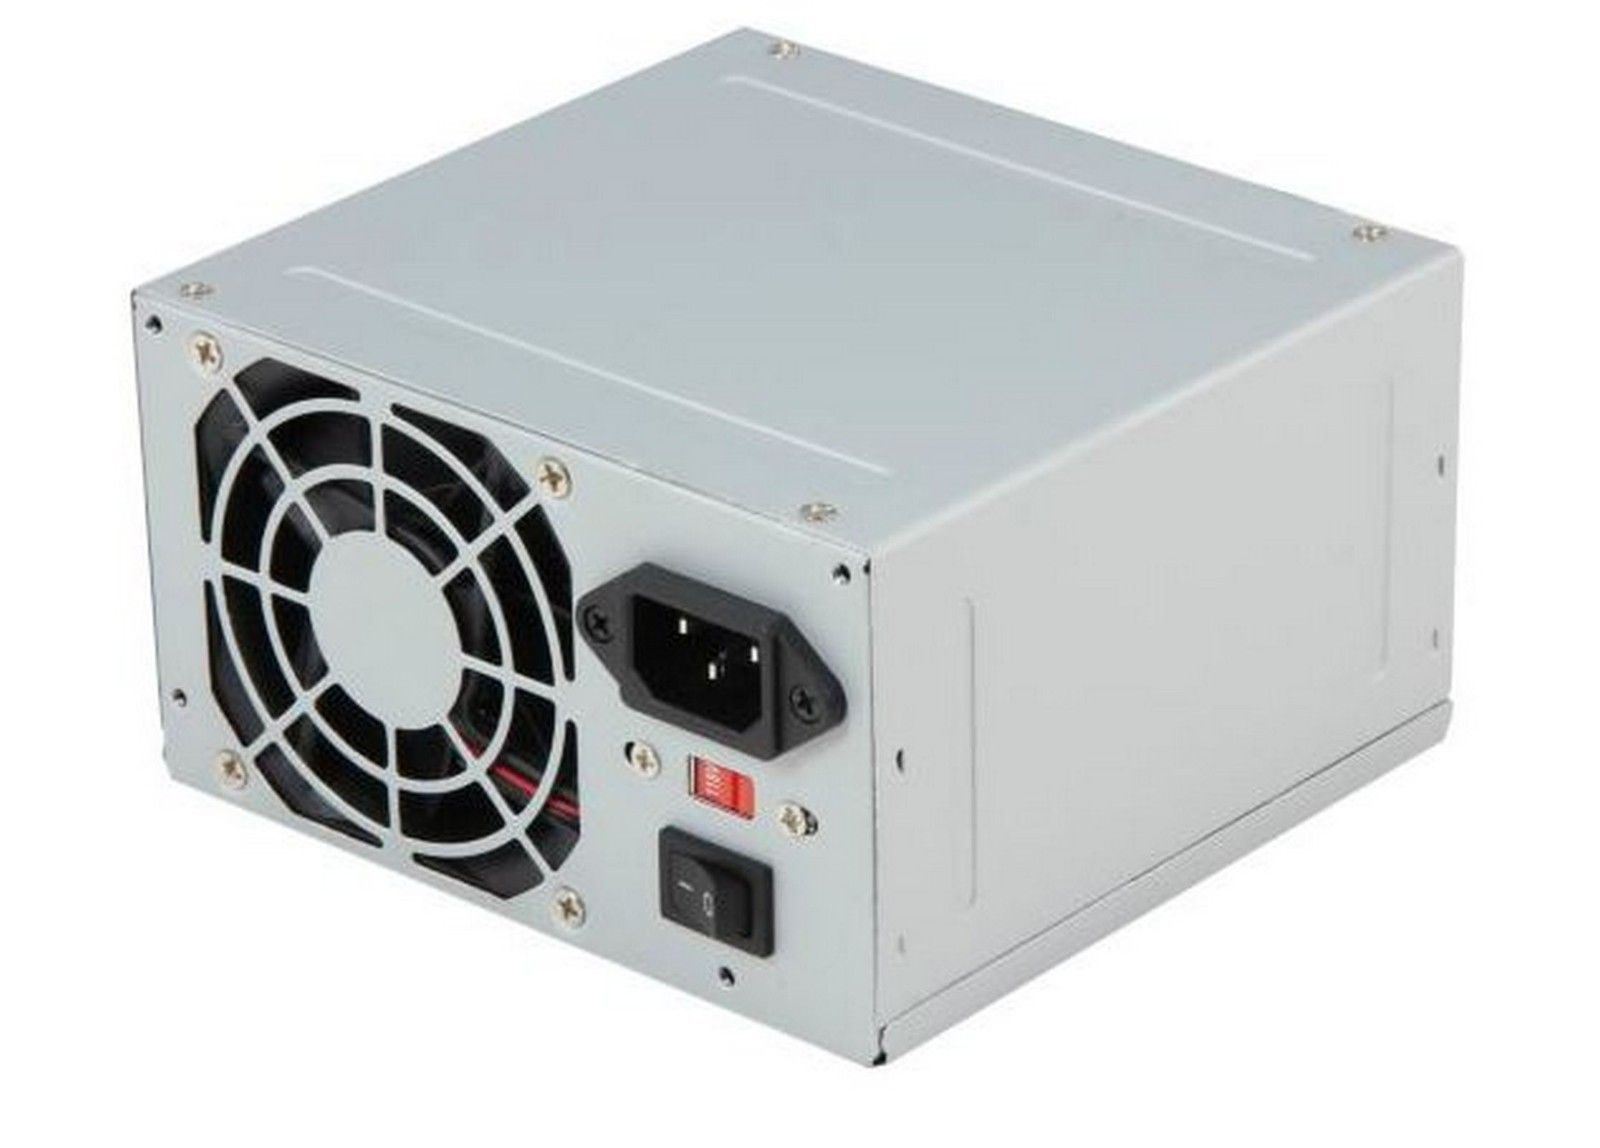 New PC Power Supply Upgrade for Compaq and 39 similar items